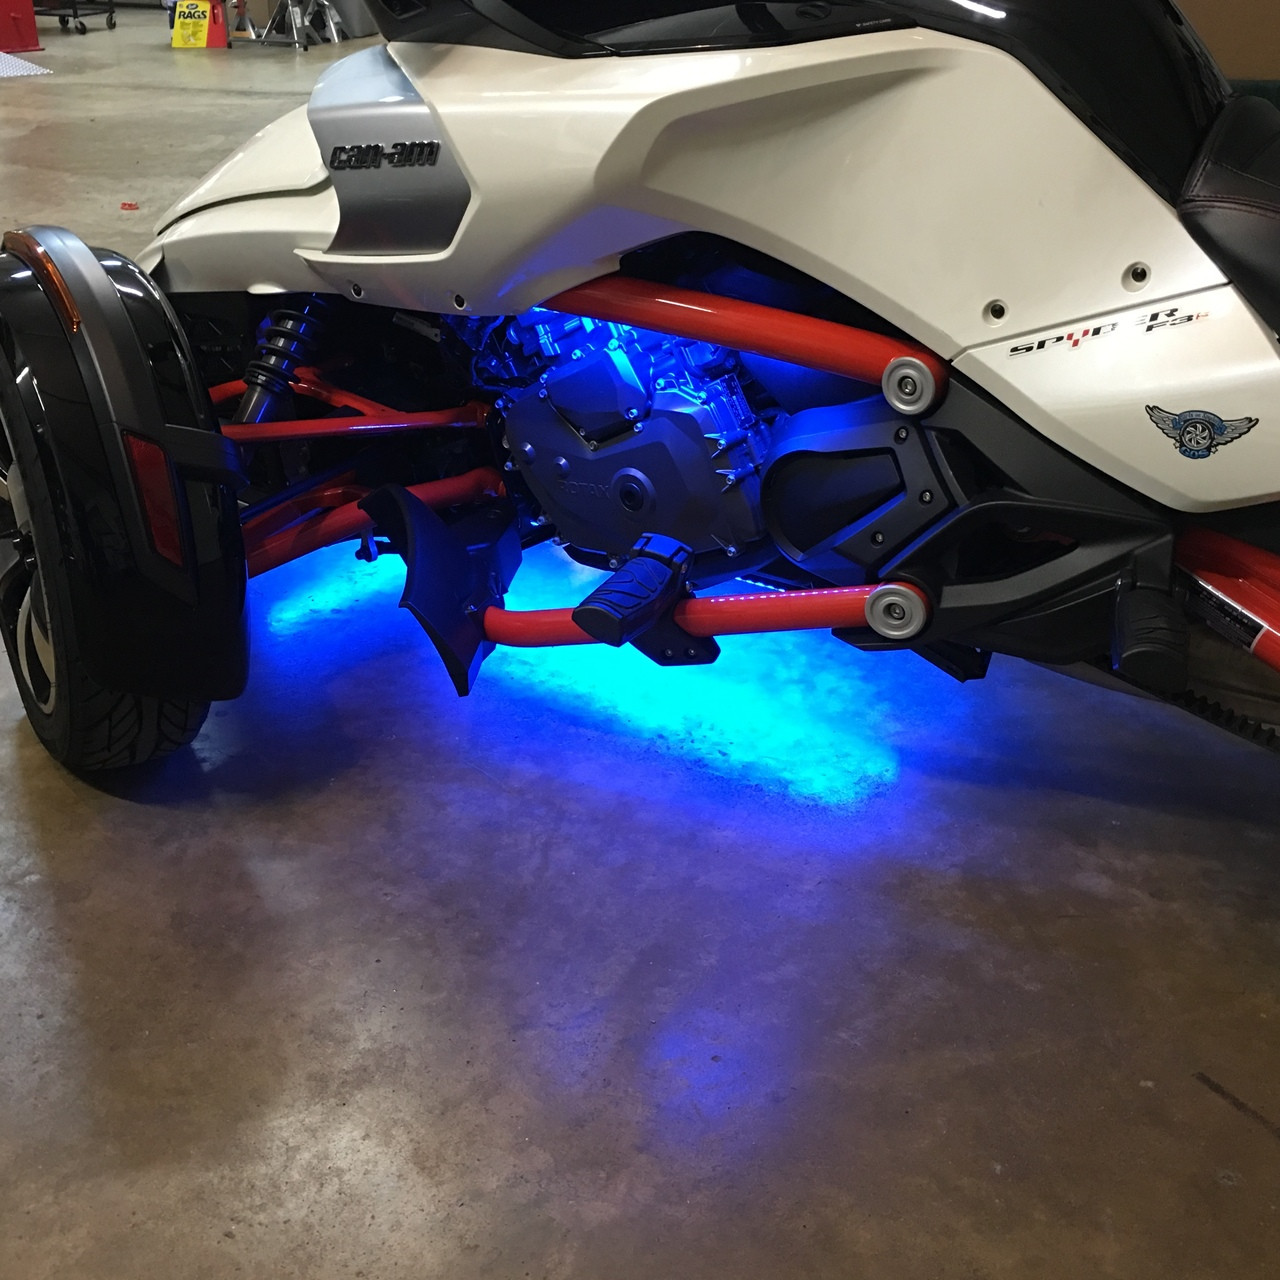 DOWN & UNDER WITH ENGINE LIGHT KIT